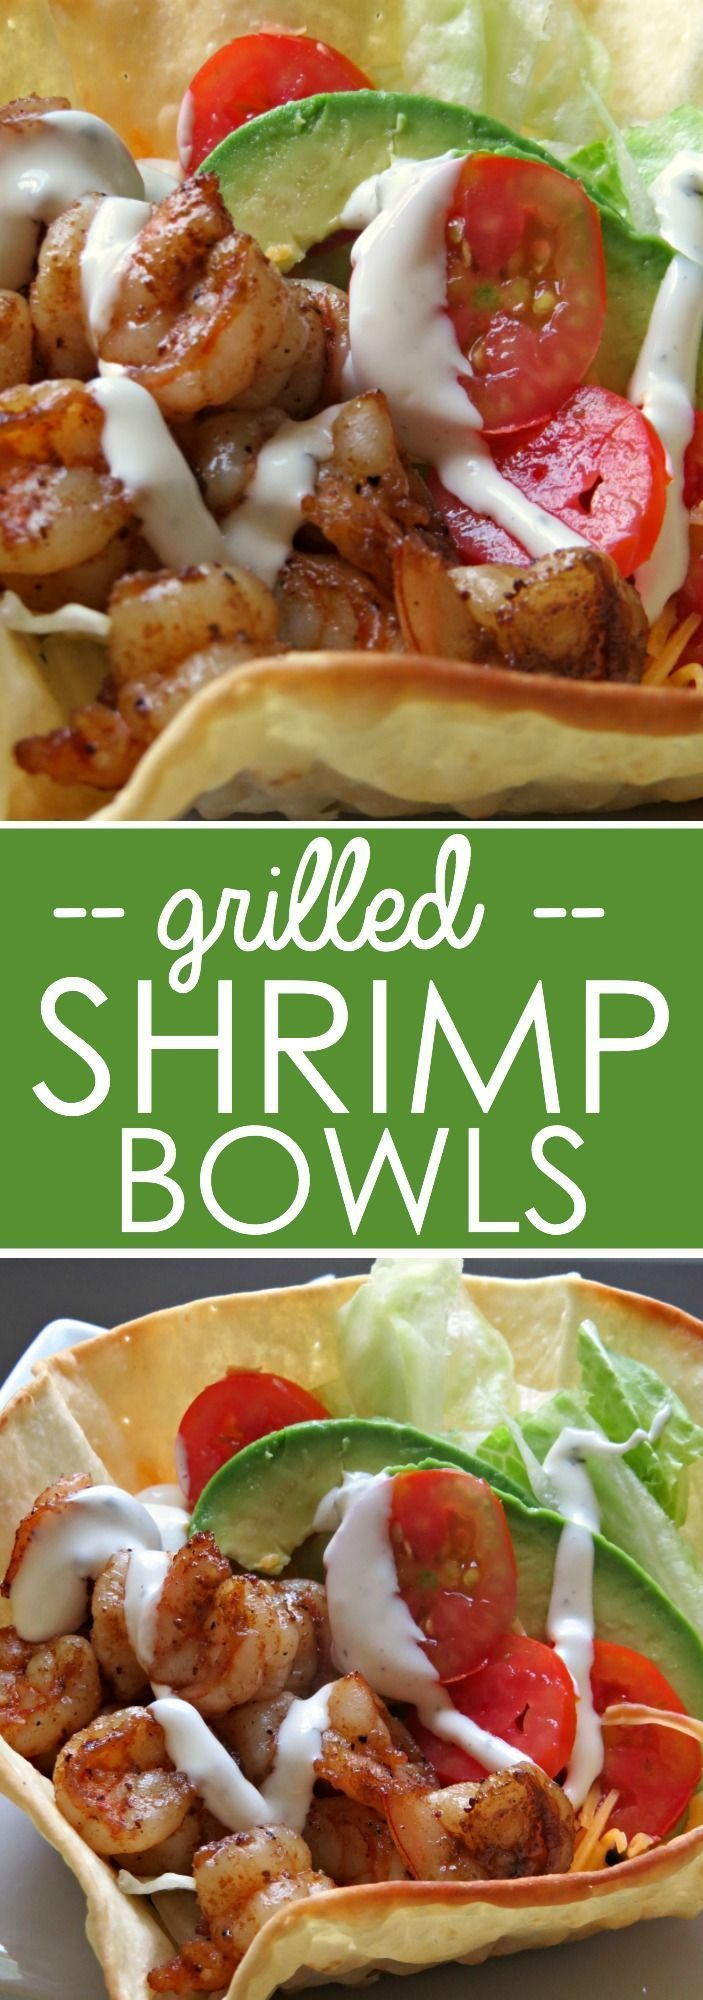 Grilled Shrimp Bowls Recipe - Written Reality